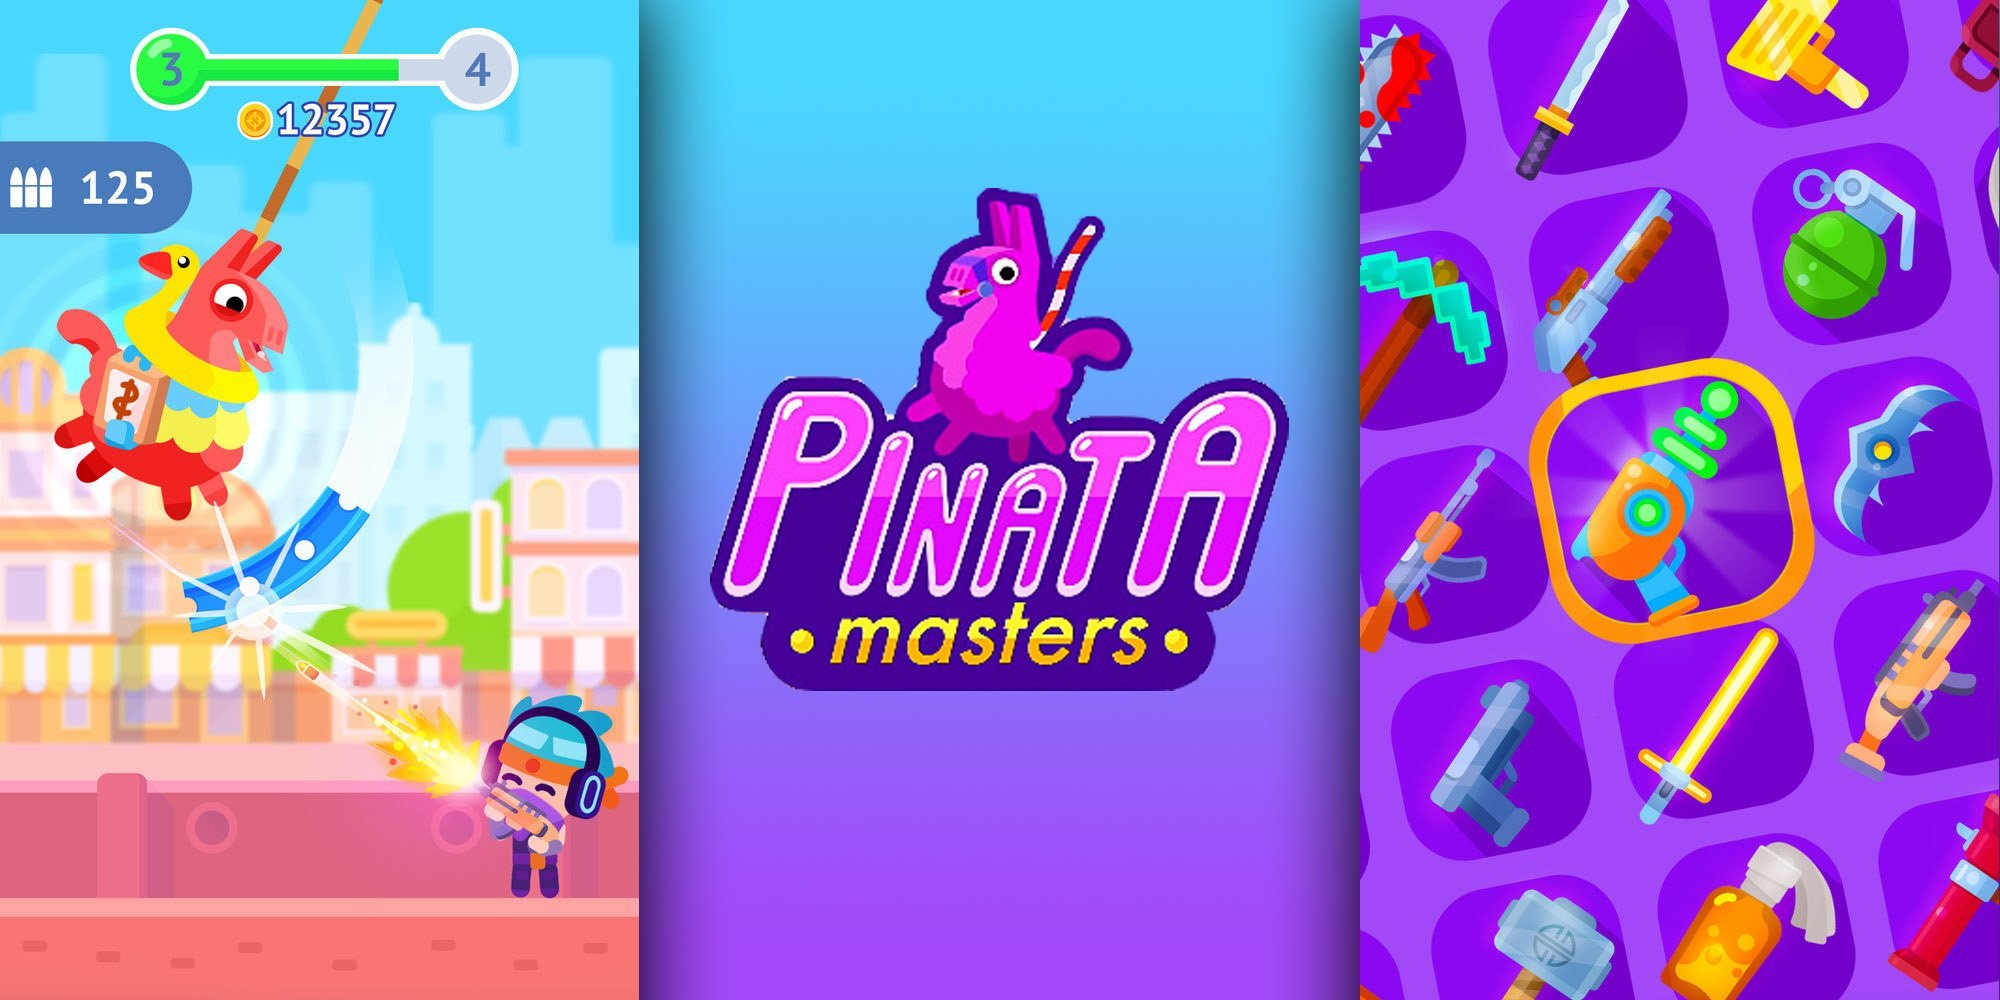 Pinatamasters Revenue Growth 638% in 5 Days